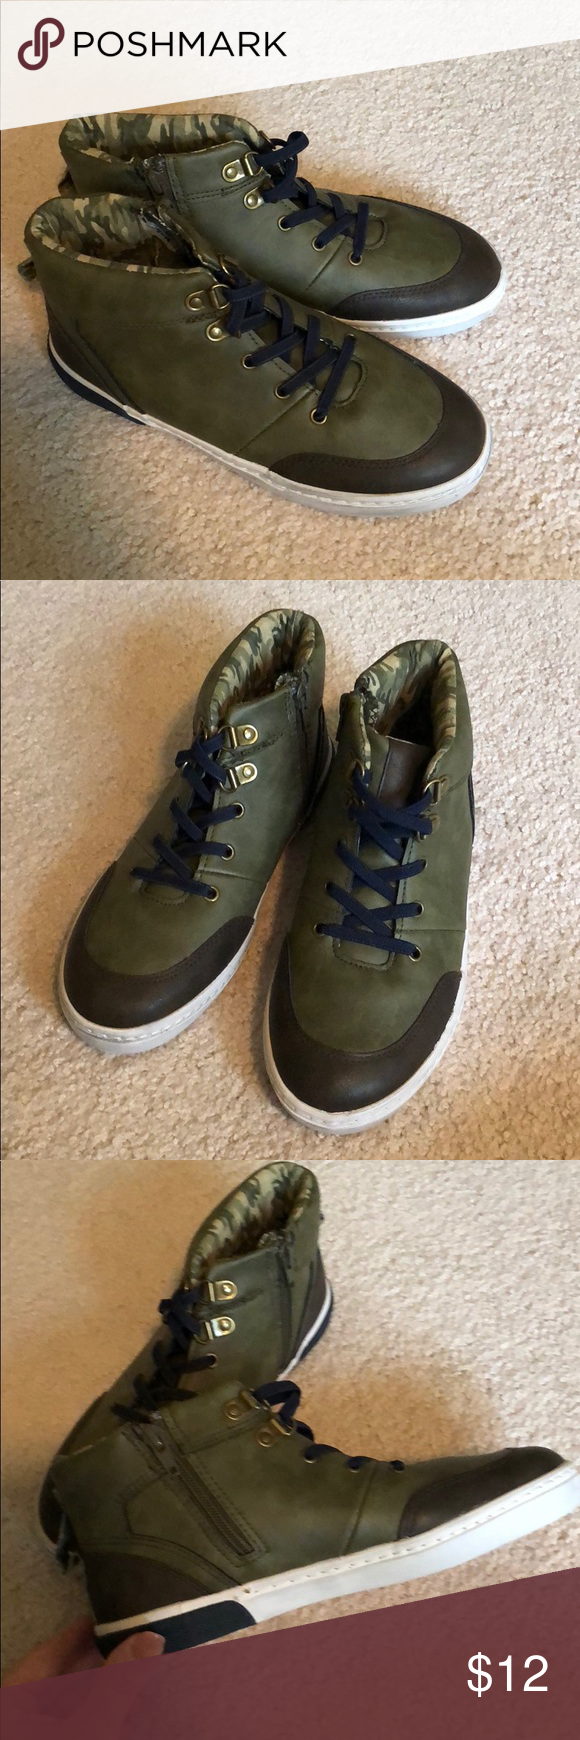 98a2b0b8175c2 Boys art class army green tennis shoes size 4 The shoes are army green with  camo